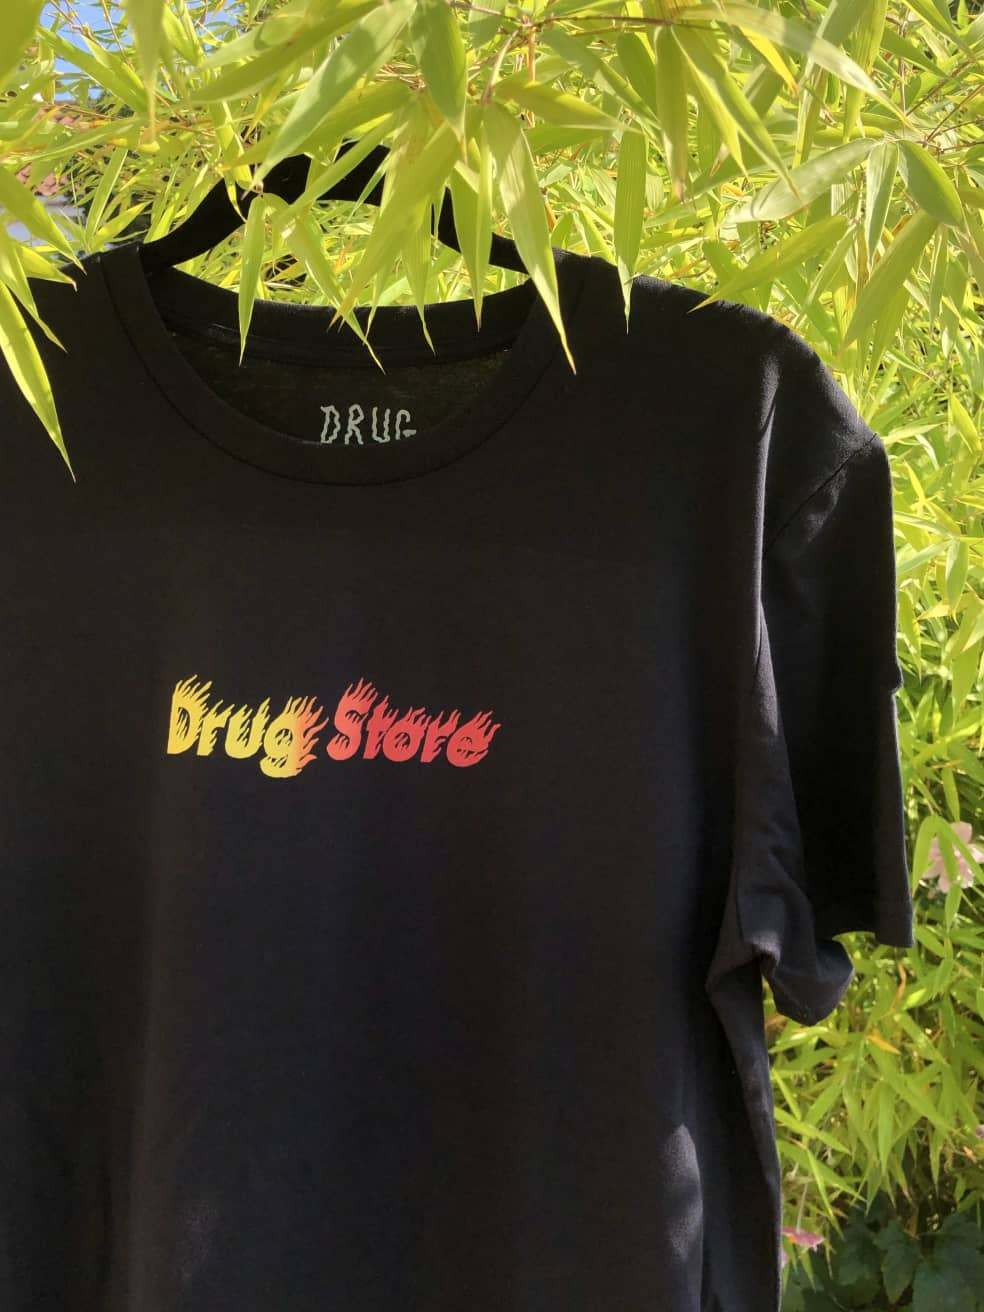 Drug Store HOT FADE! Tee Black   T-Shirt by Drug Store 1